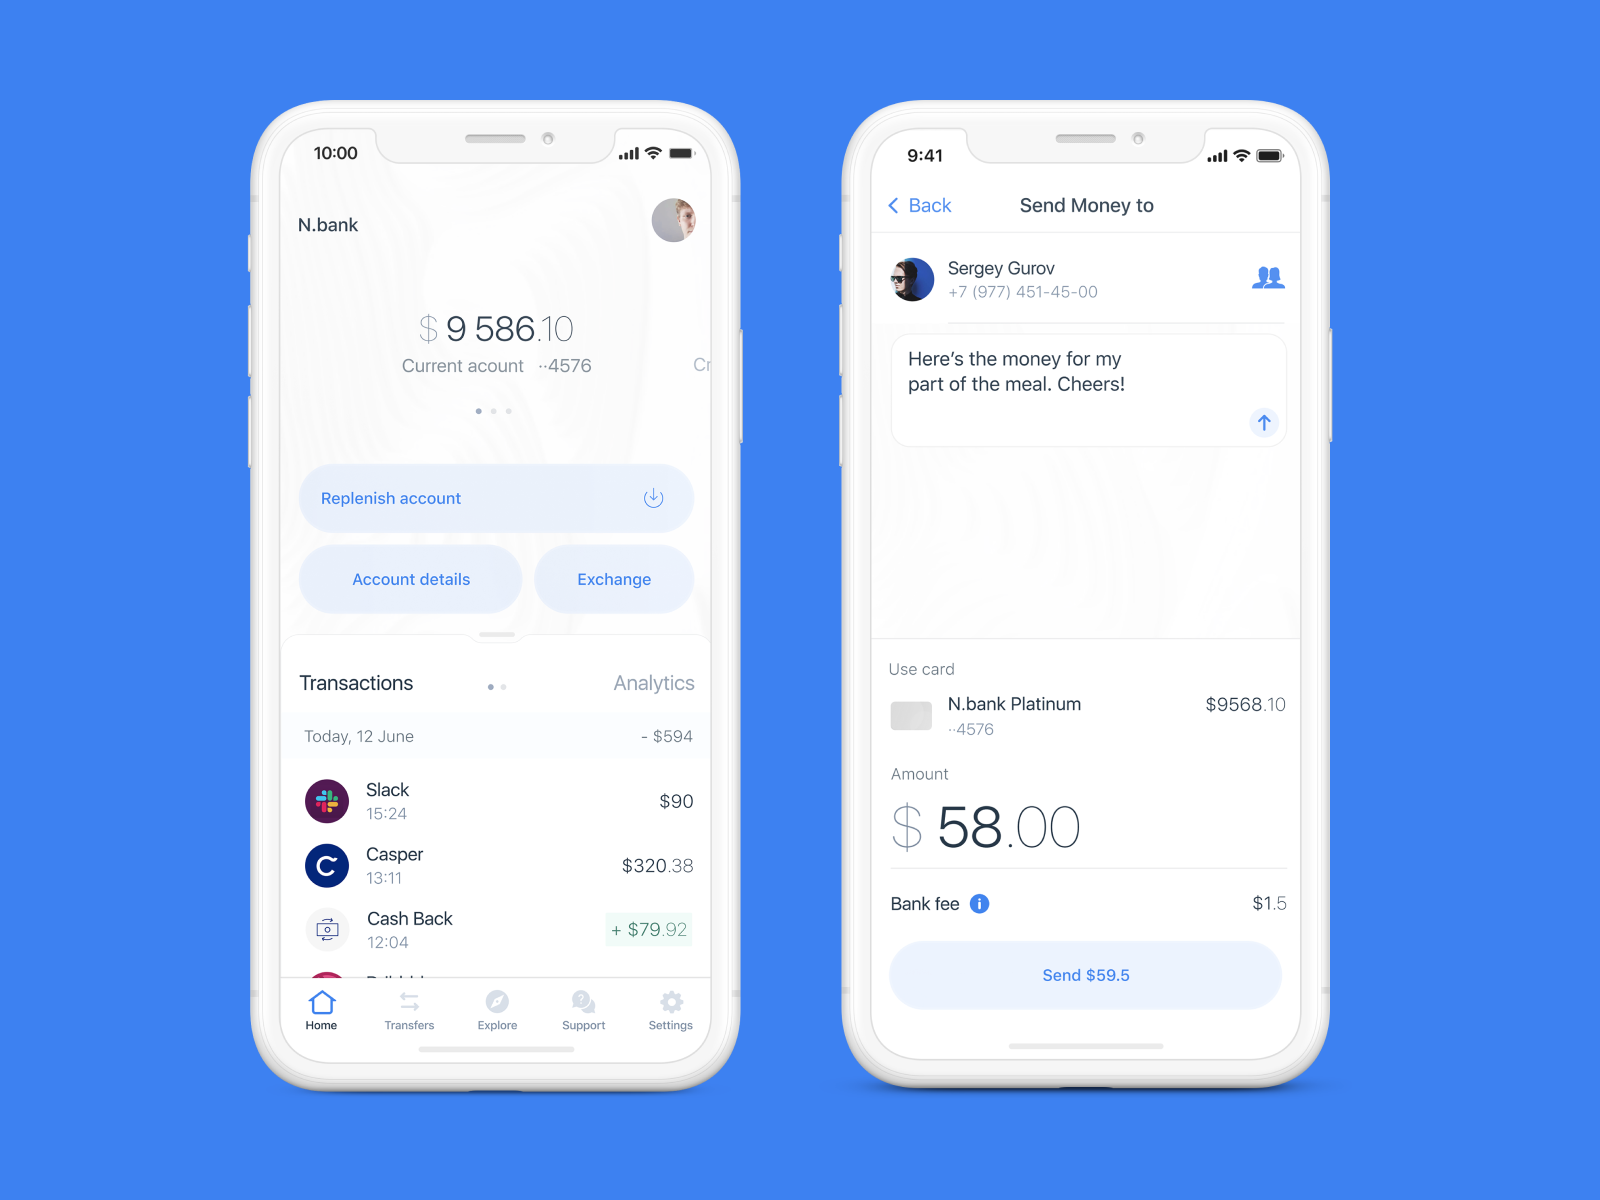 Bank Application - Mobile Concept by Artem Buryak for Hiwow